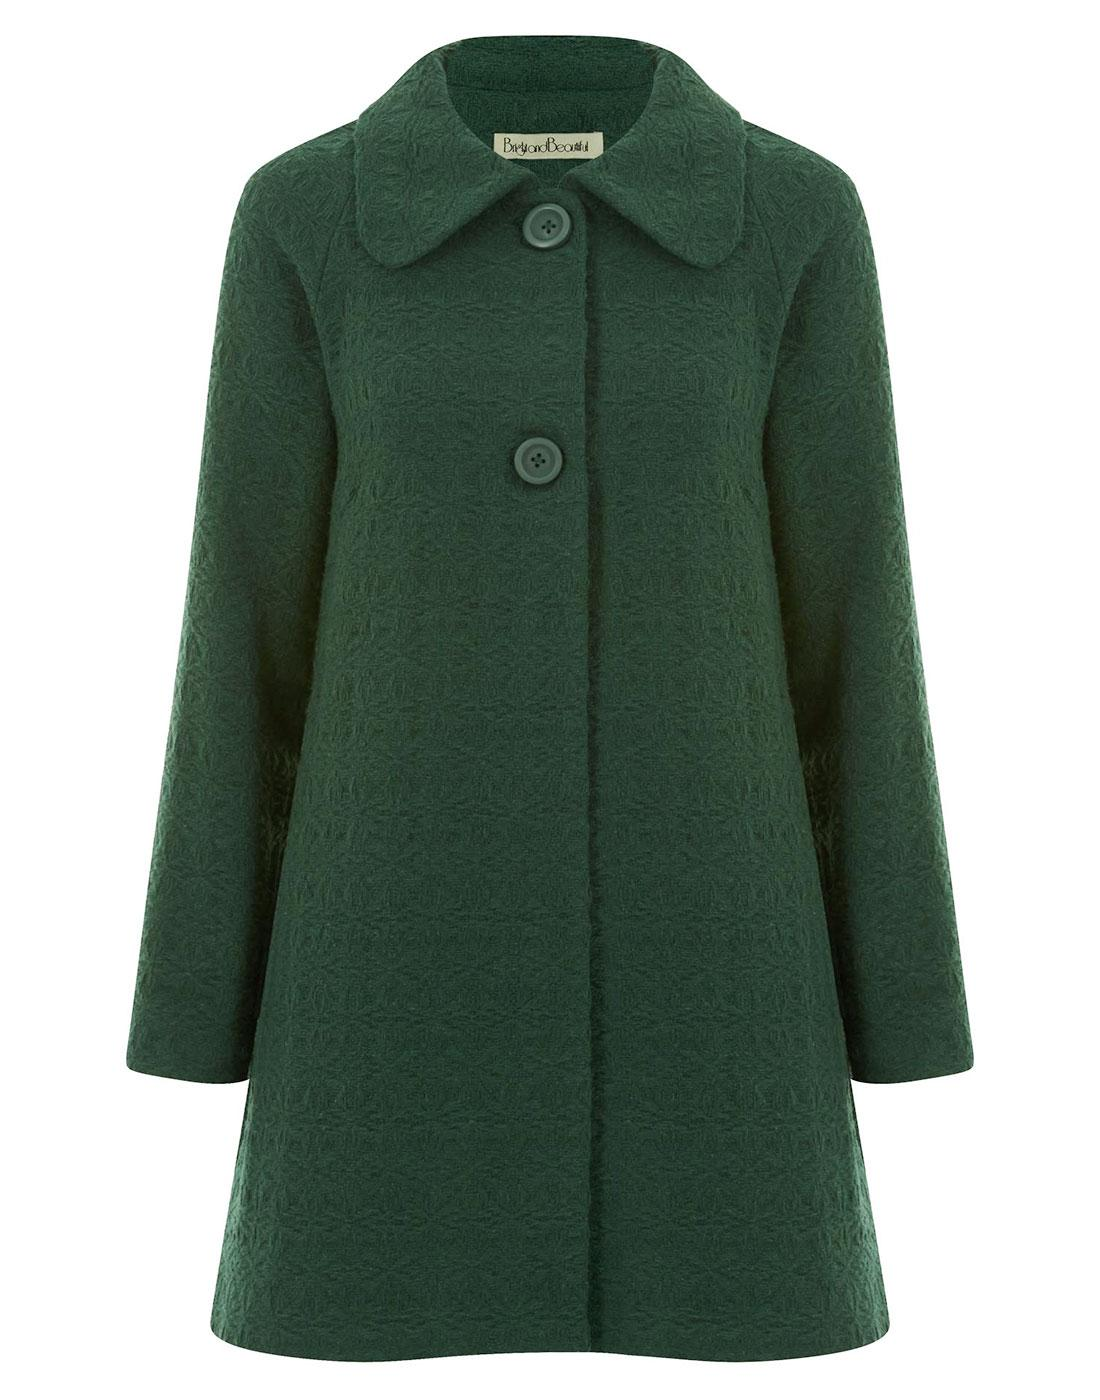 Gloria BRIGHT & BEAUTIFUL Textured Swing Coat